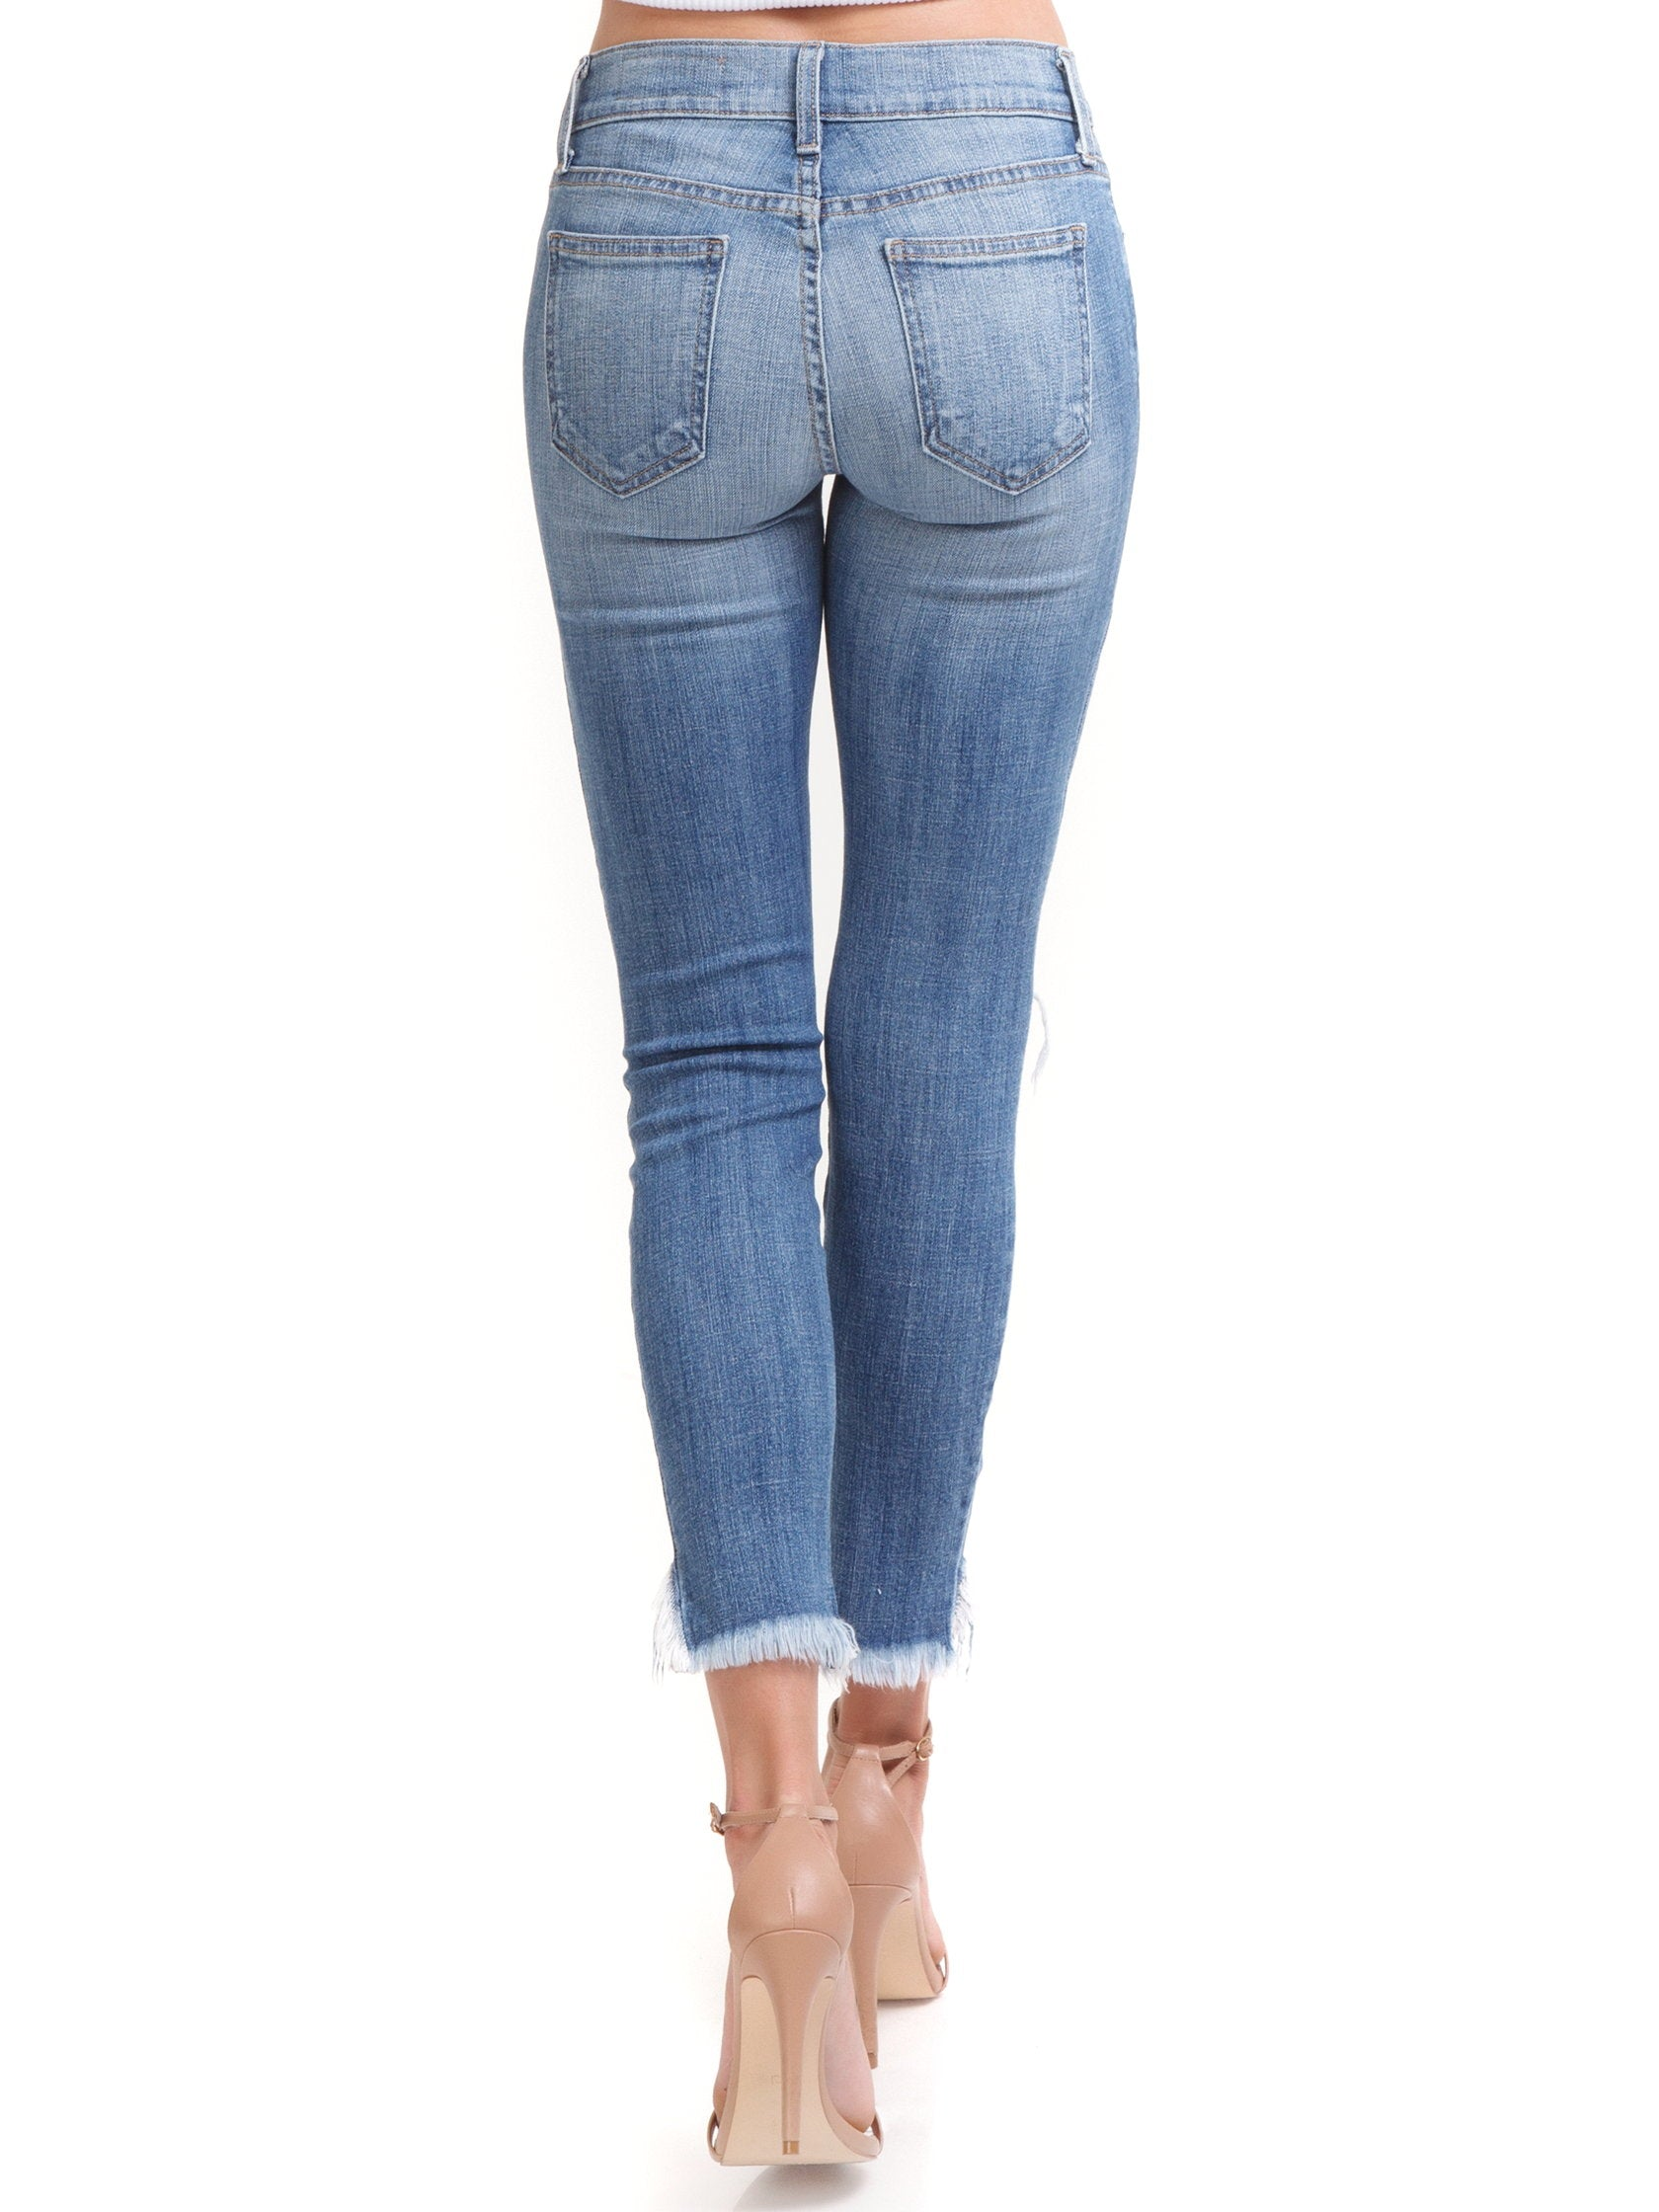 Women outfit in a denim rental from PISTOLA called Audrey Distressed Crop Jeans